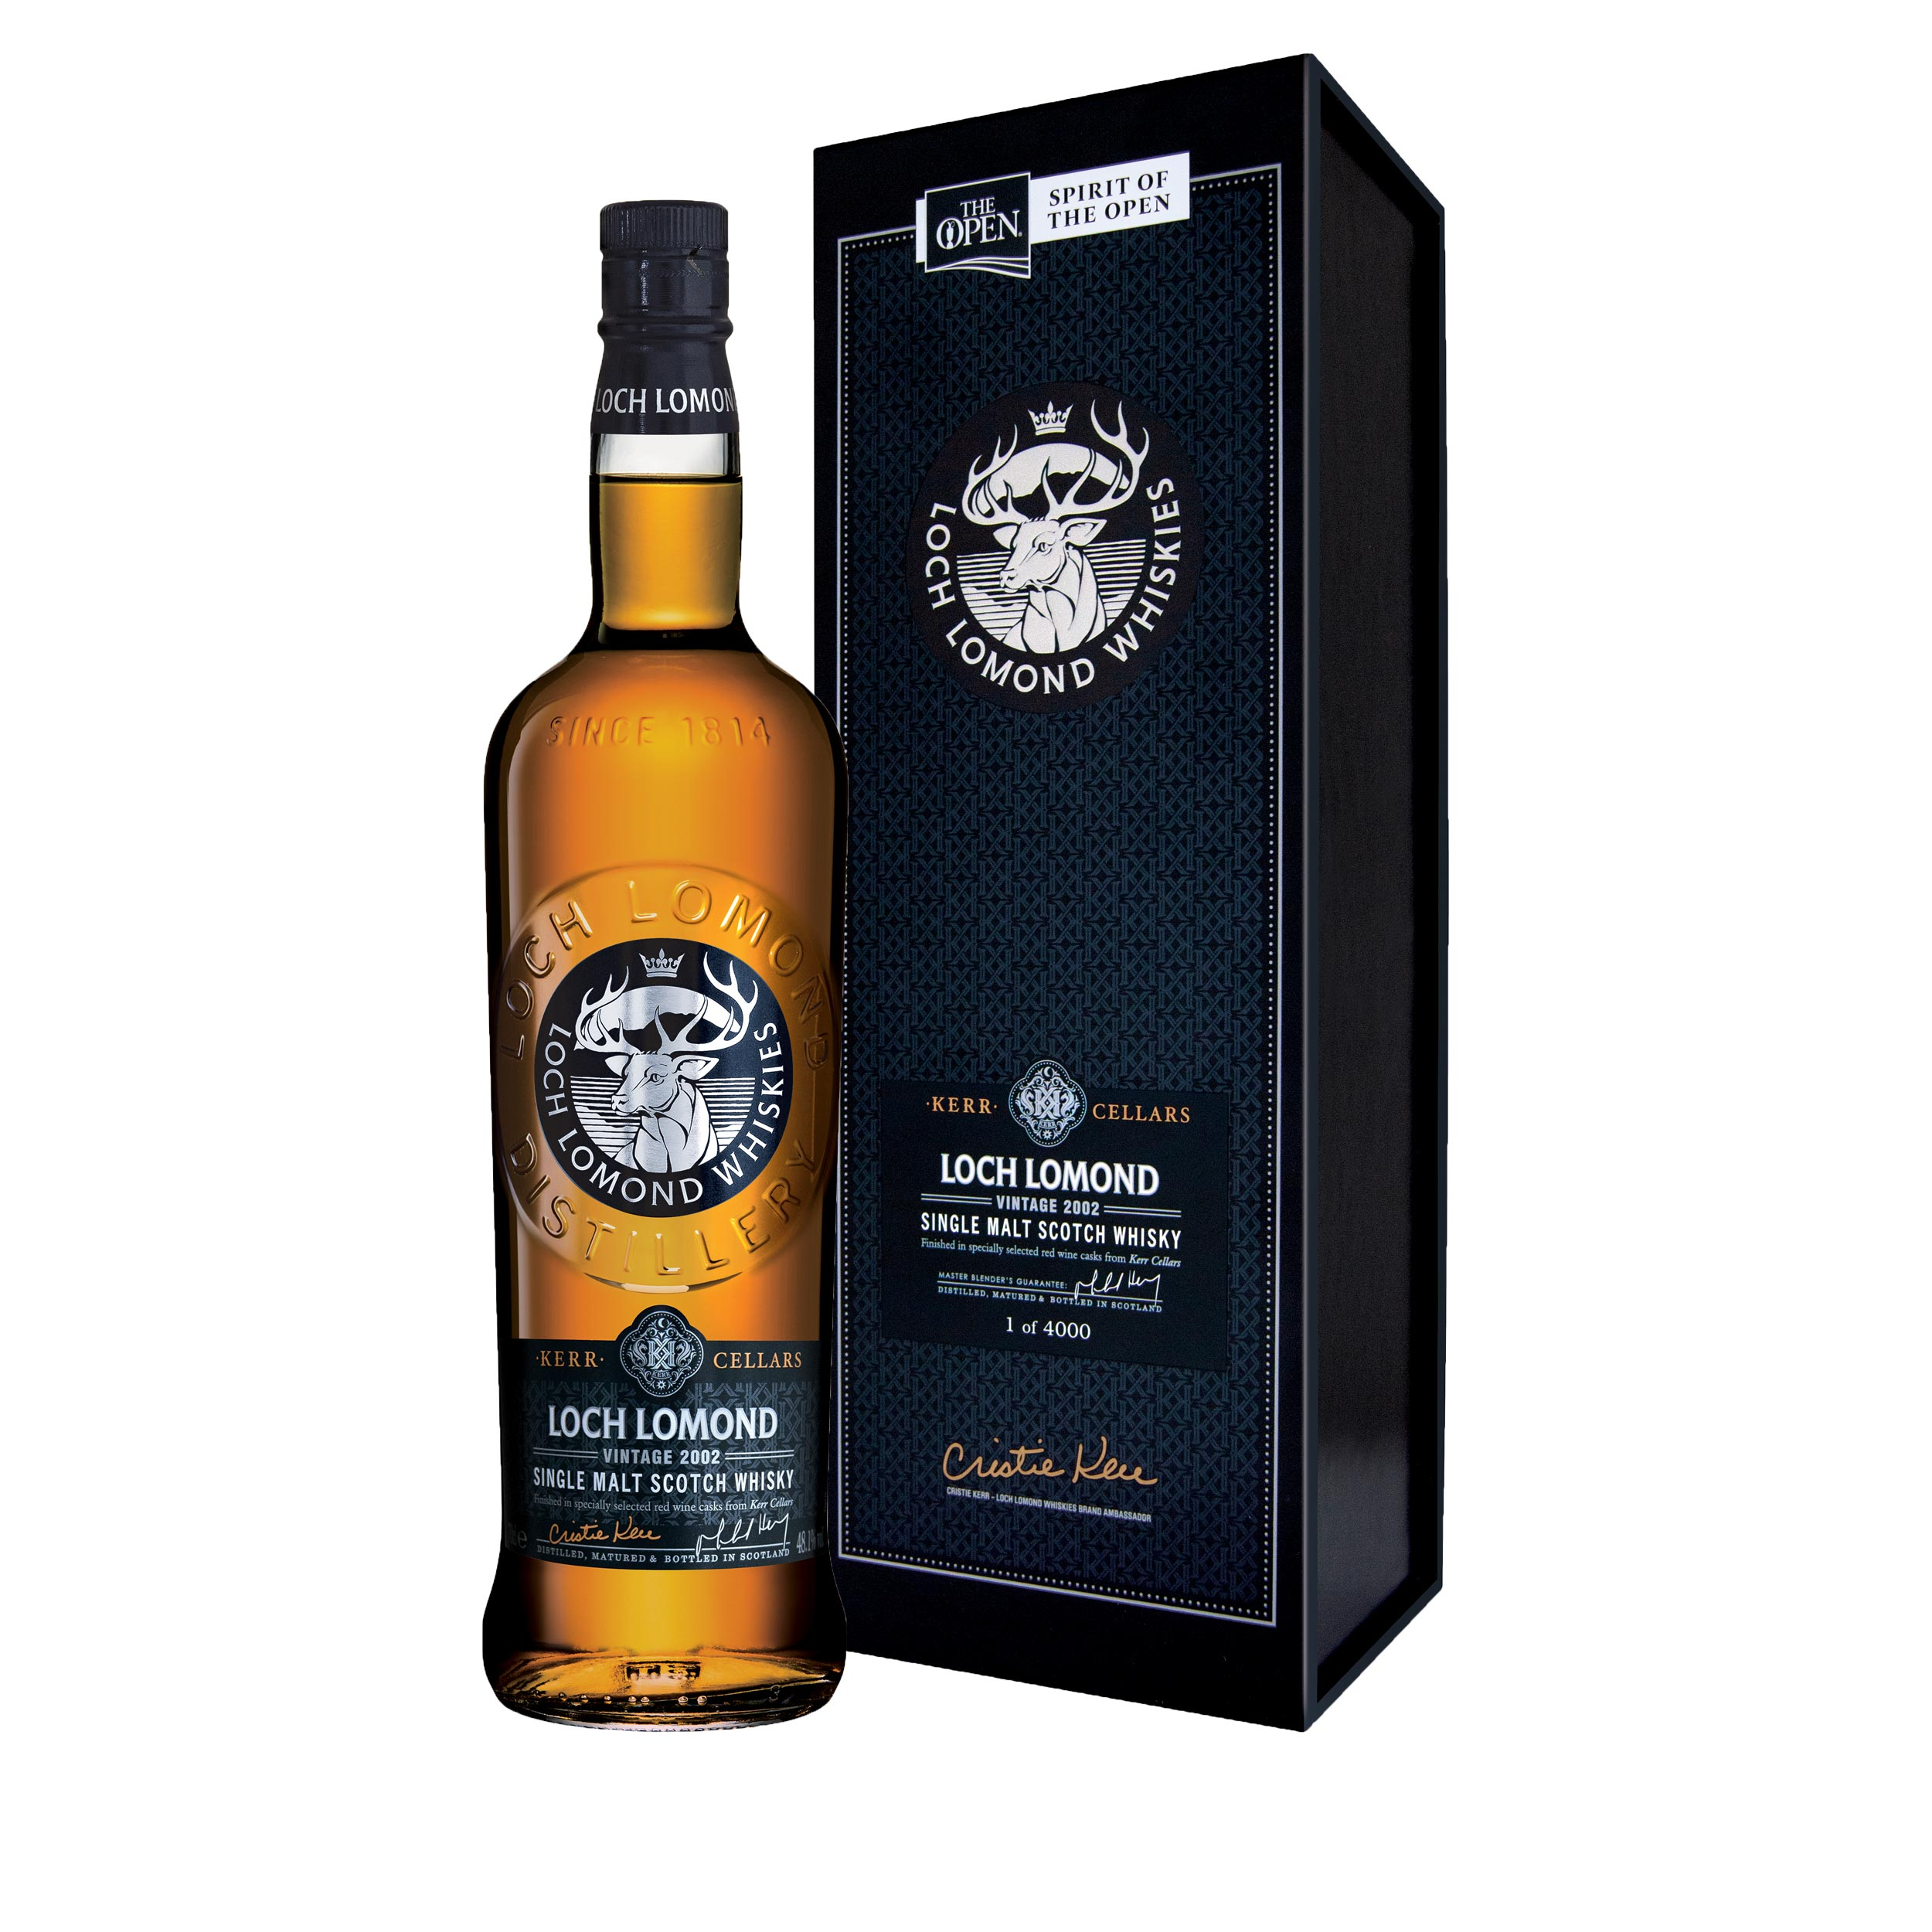 Loch Lomond 2002 Cristie Kerr Limited Edition Highland Single Malt Scotch Whisky 70cl